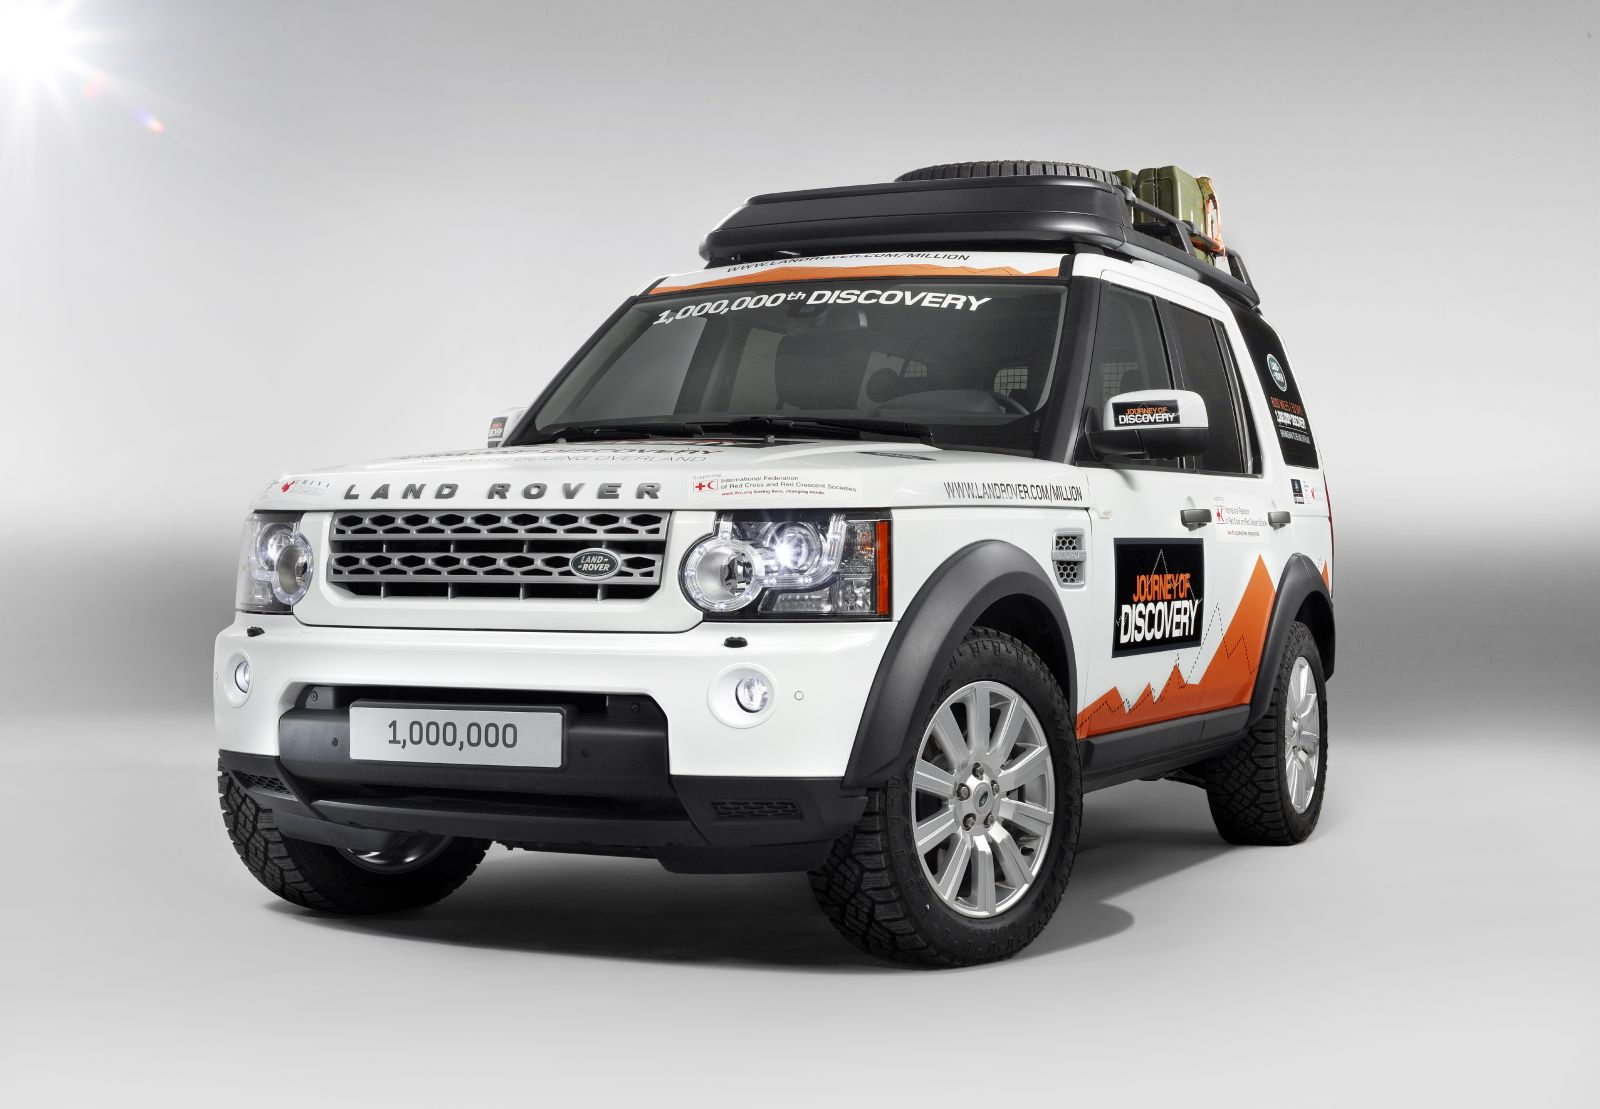 Daily Cars: 1,000,000th Land Rover Discovery Embarks On